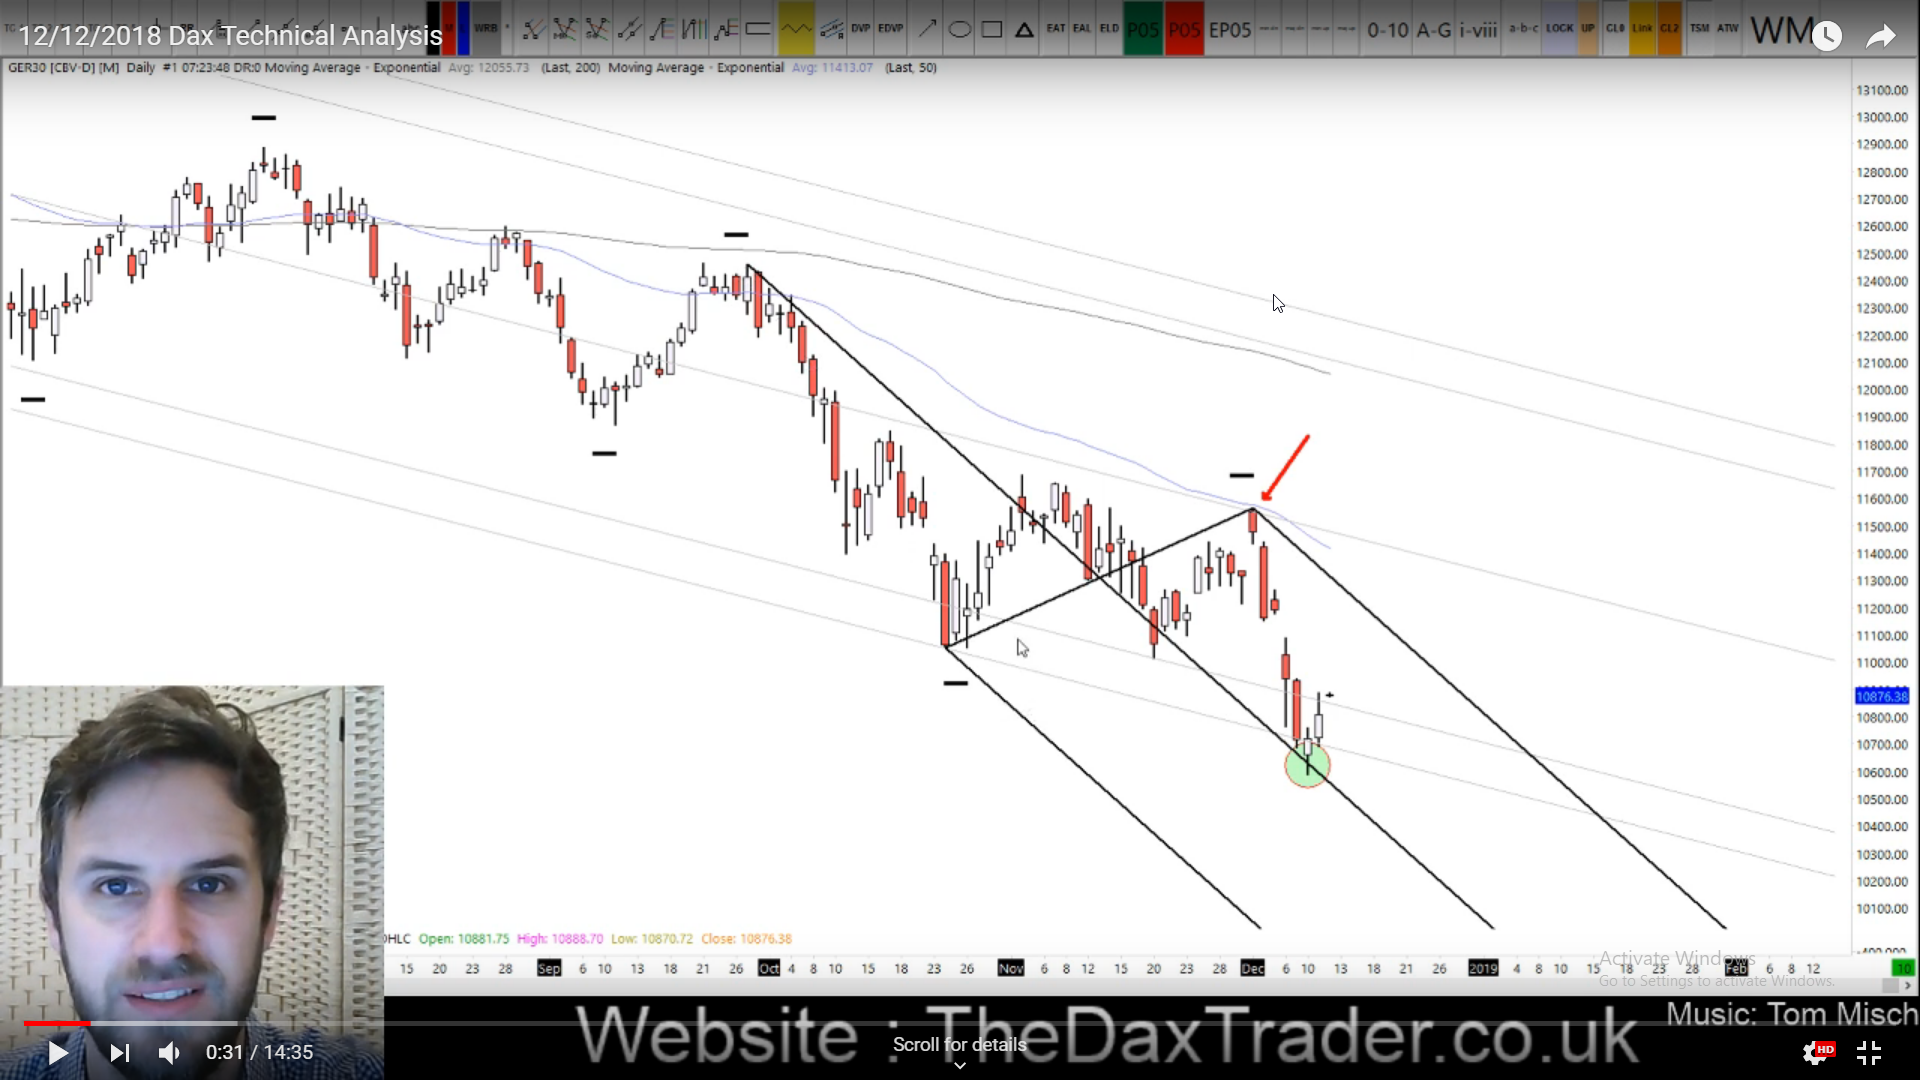 12-12-2018 Dax Technical Analysis